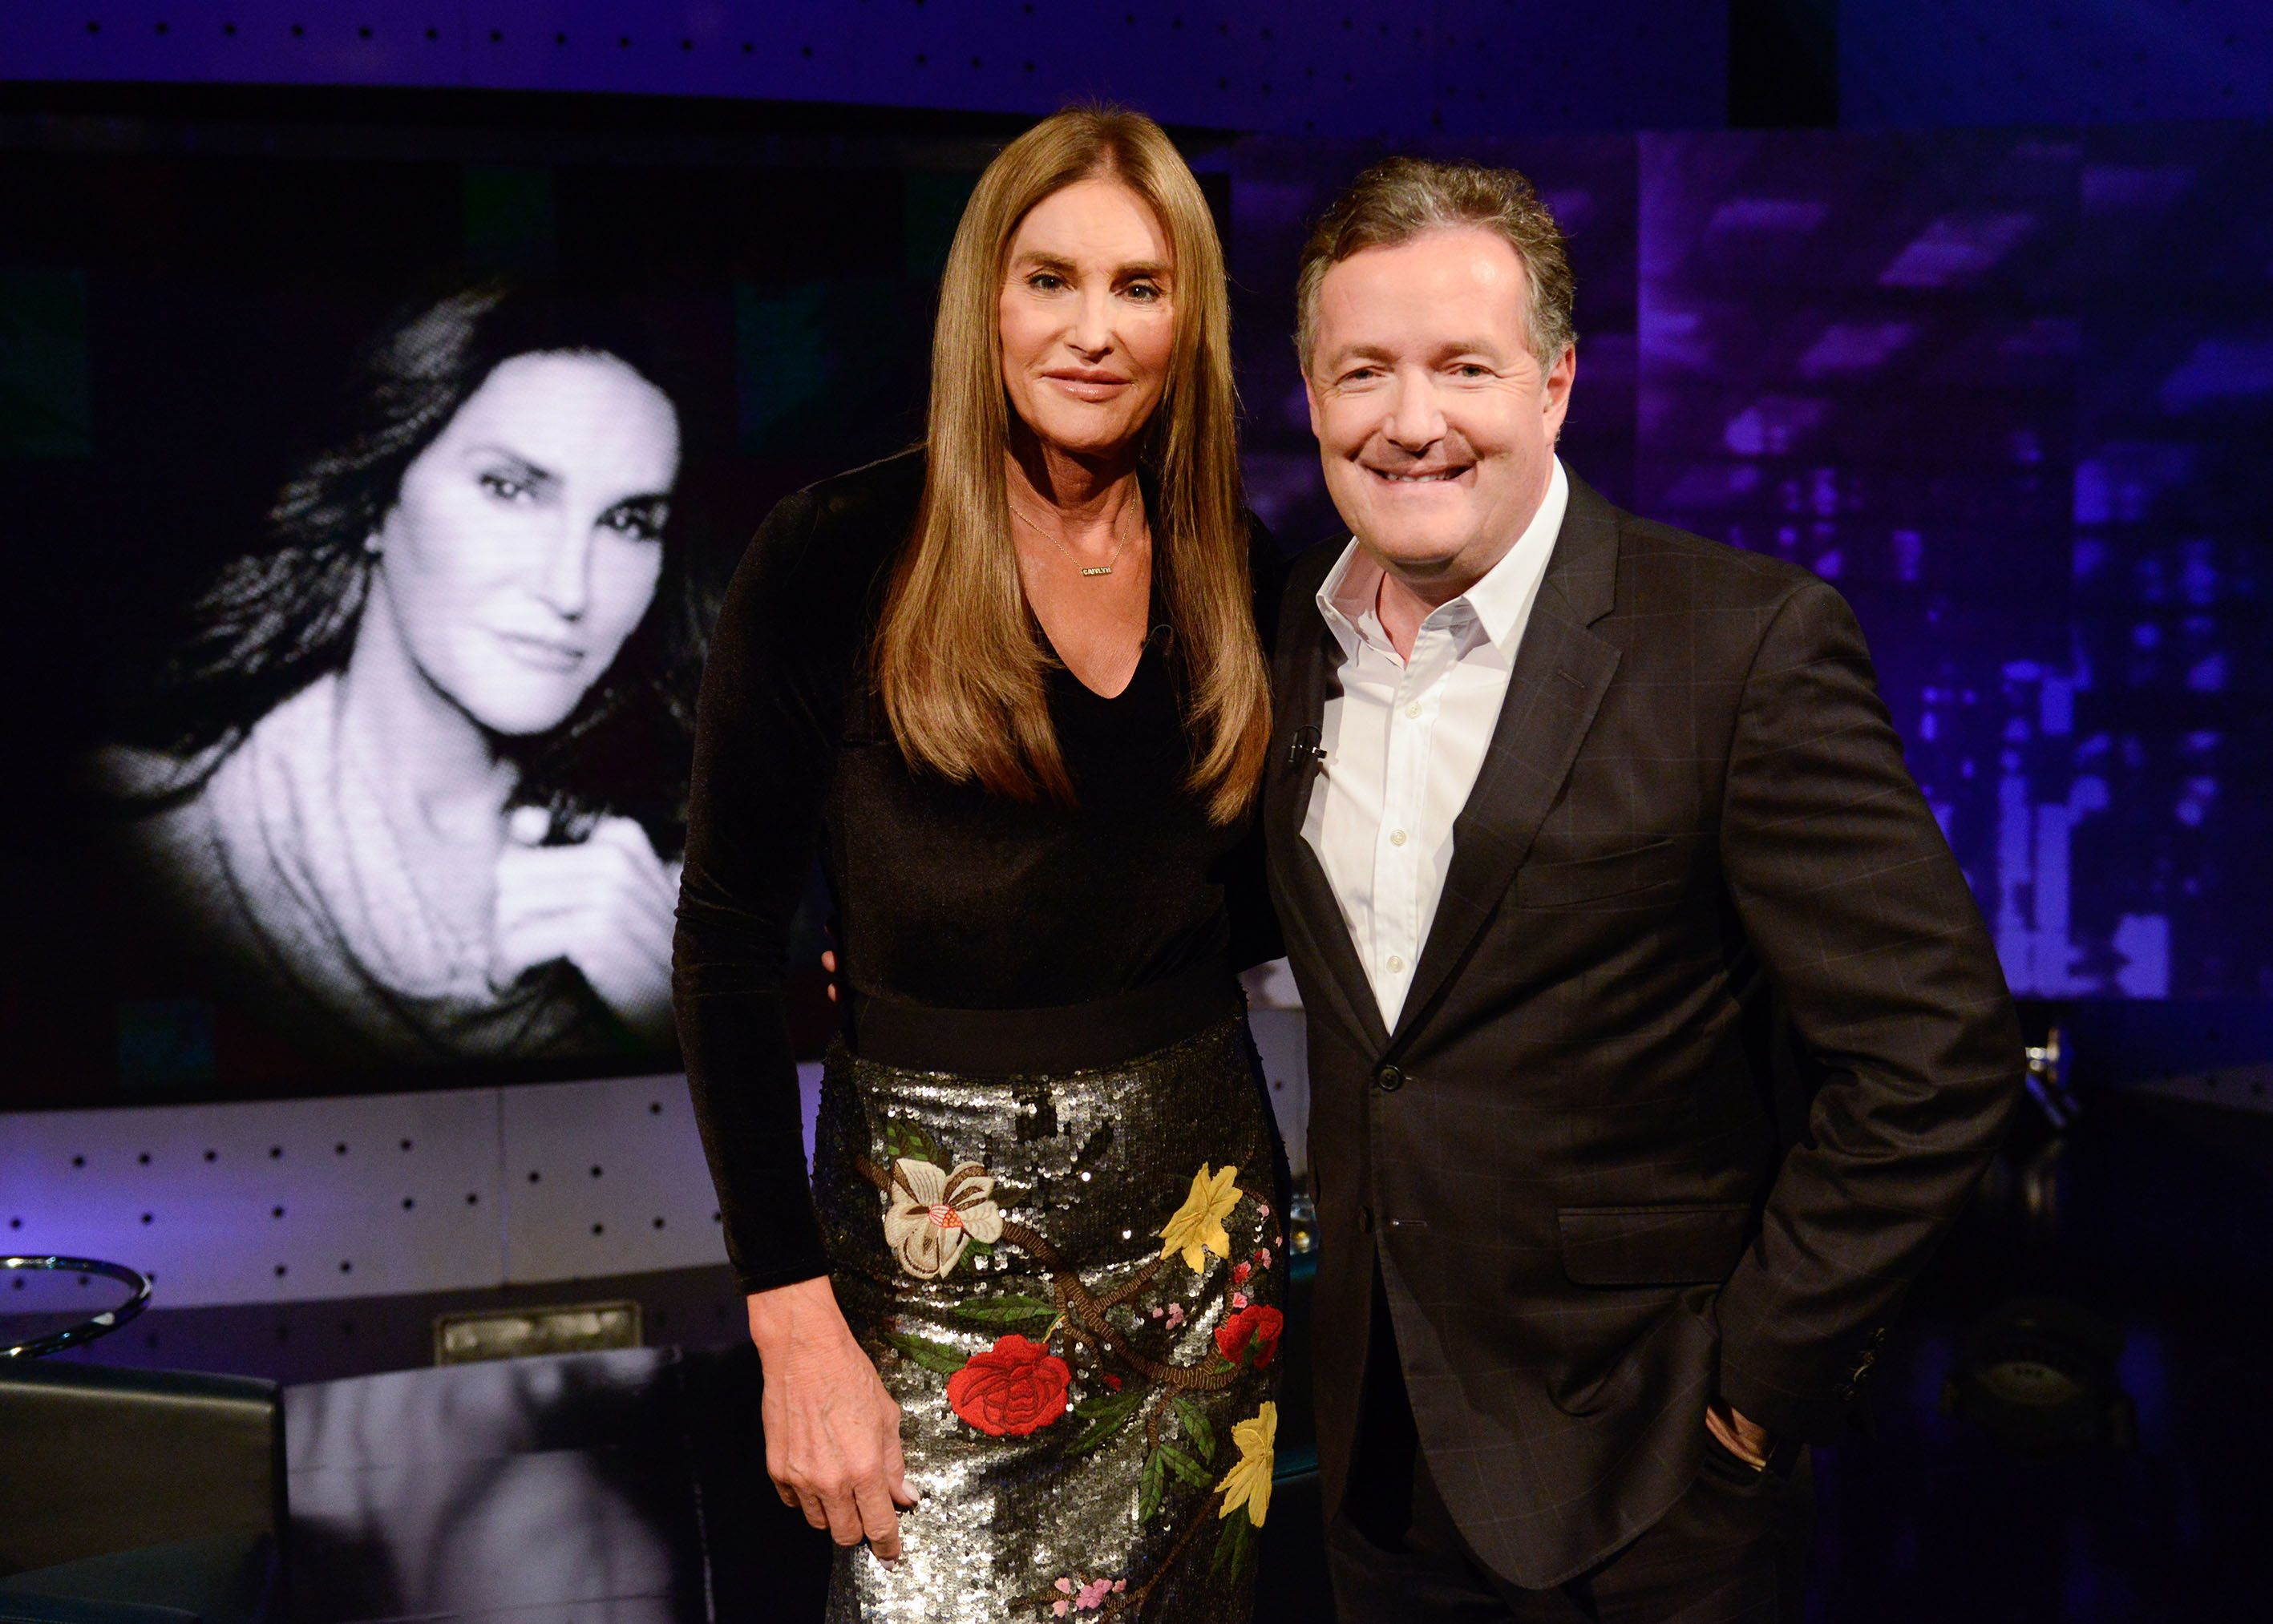 Caitlyn Jenner Schools Piers Morgan On How To Talk About Transgender Issues After 'Disrespectful'